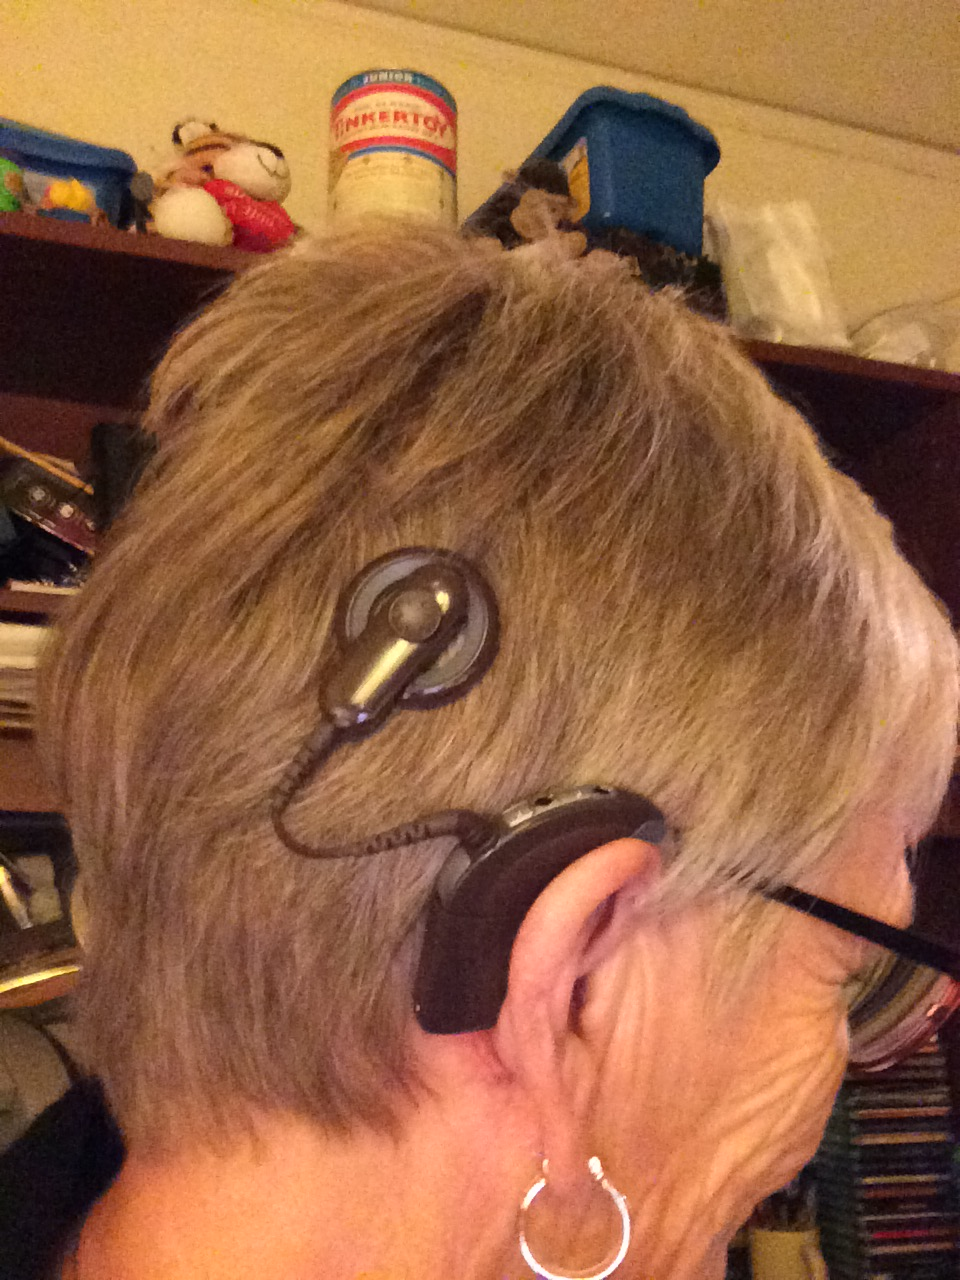 Cochlear Implant Update – By JanWilberg